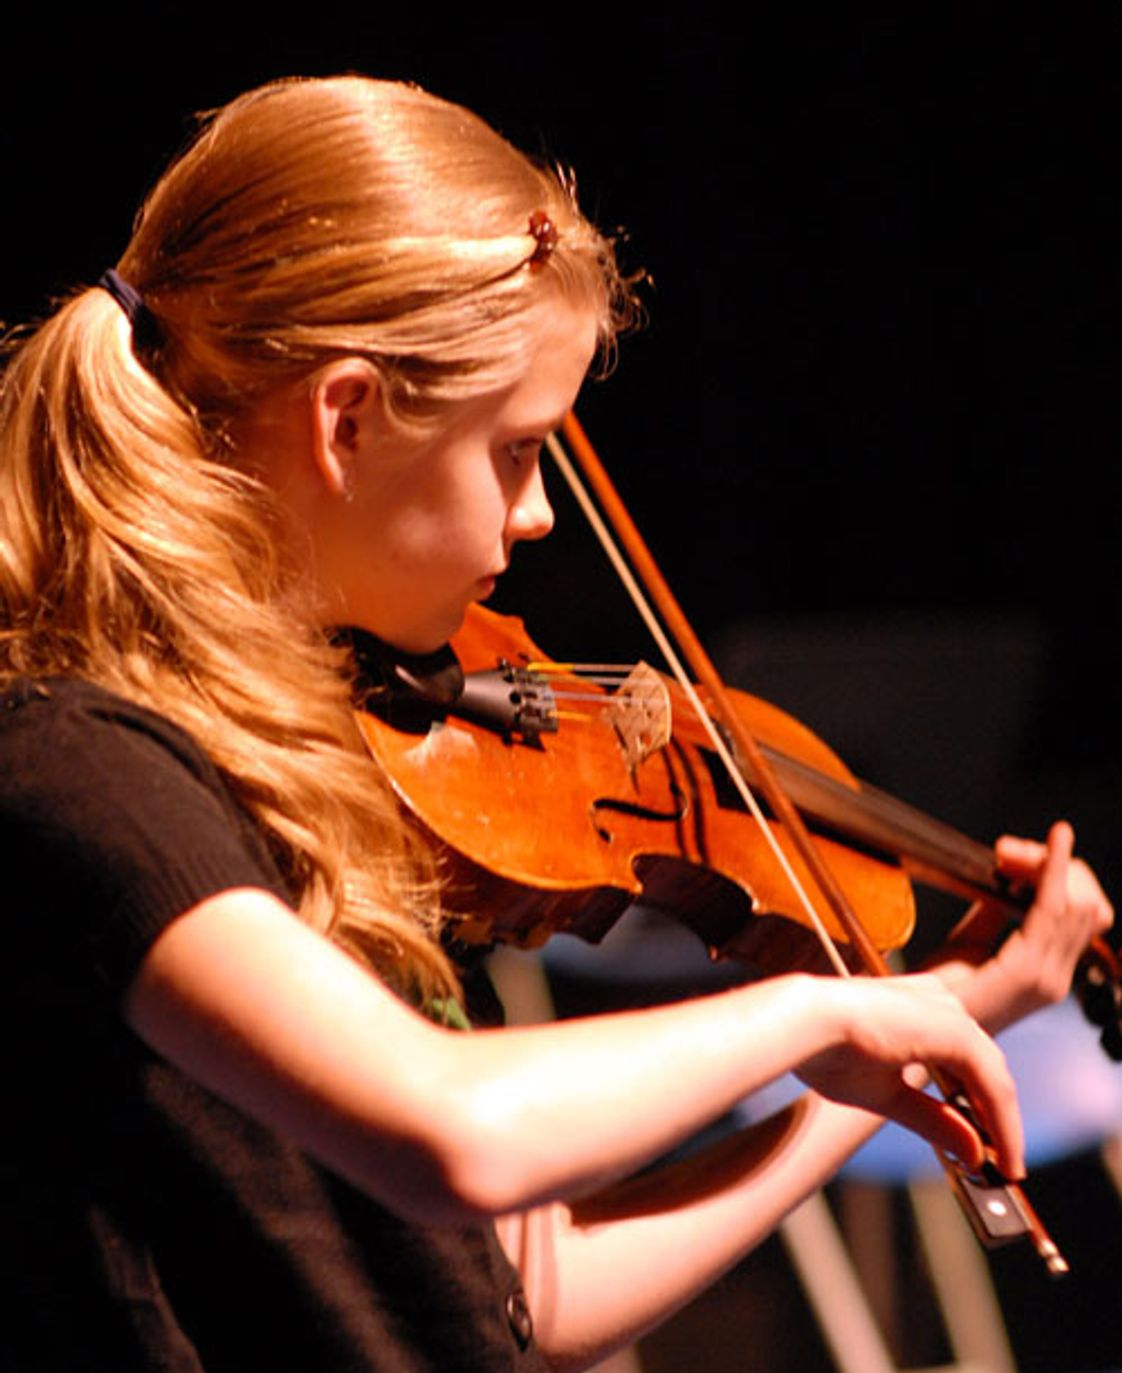 Stoneleigh Burnham School Photo #1 - An SBS student plays her violin during an on campus performing arts presentation.